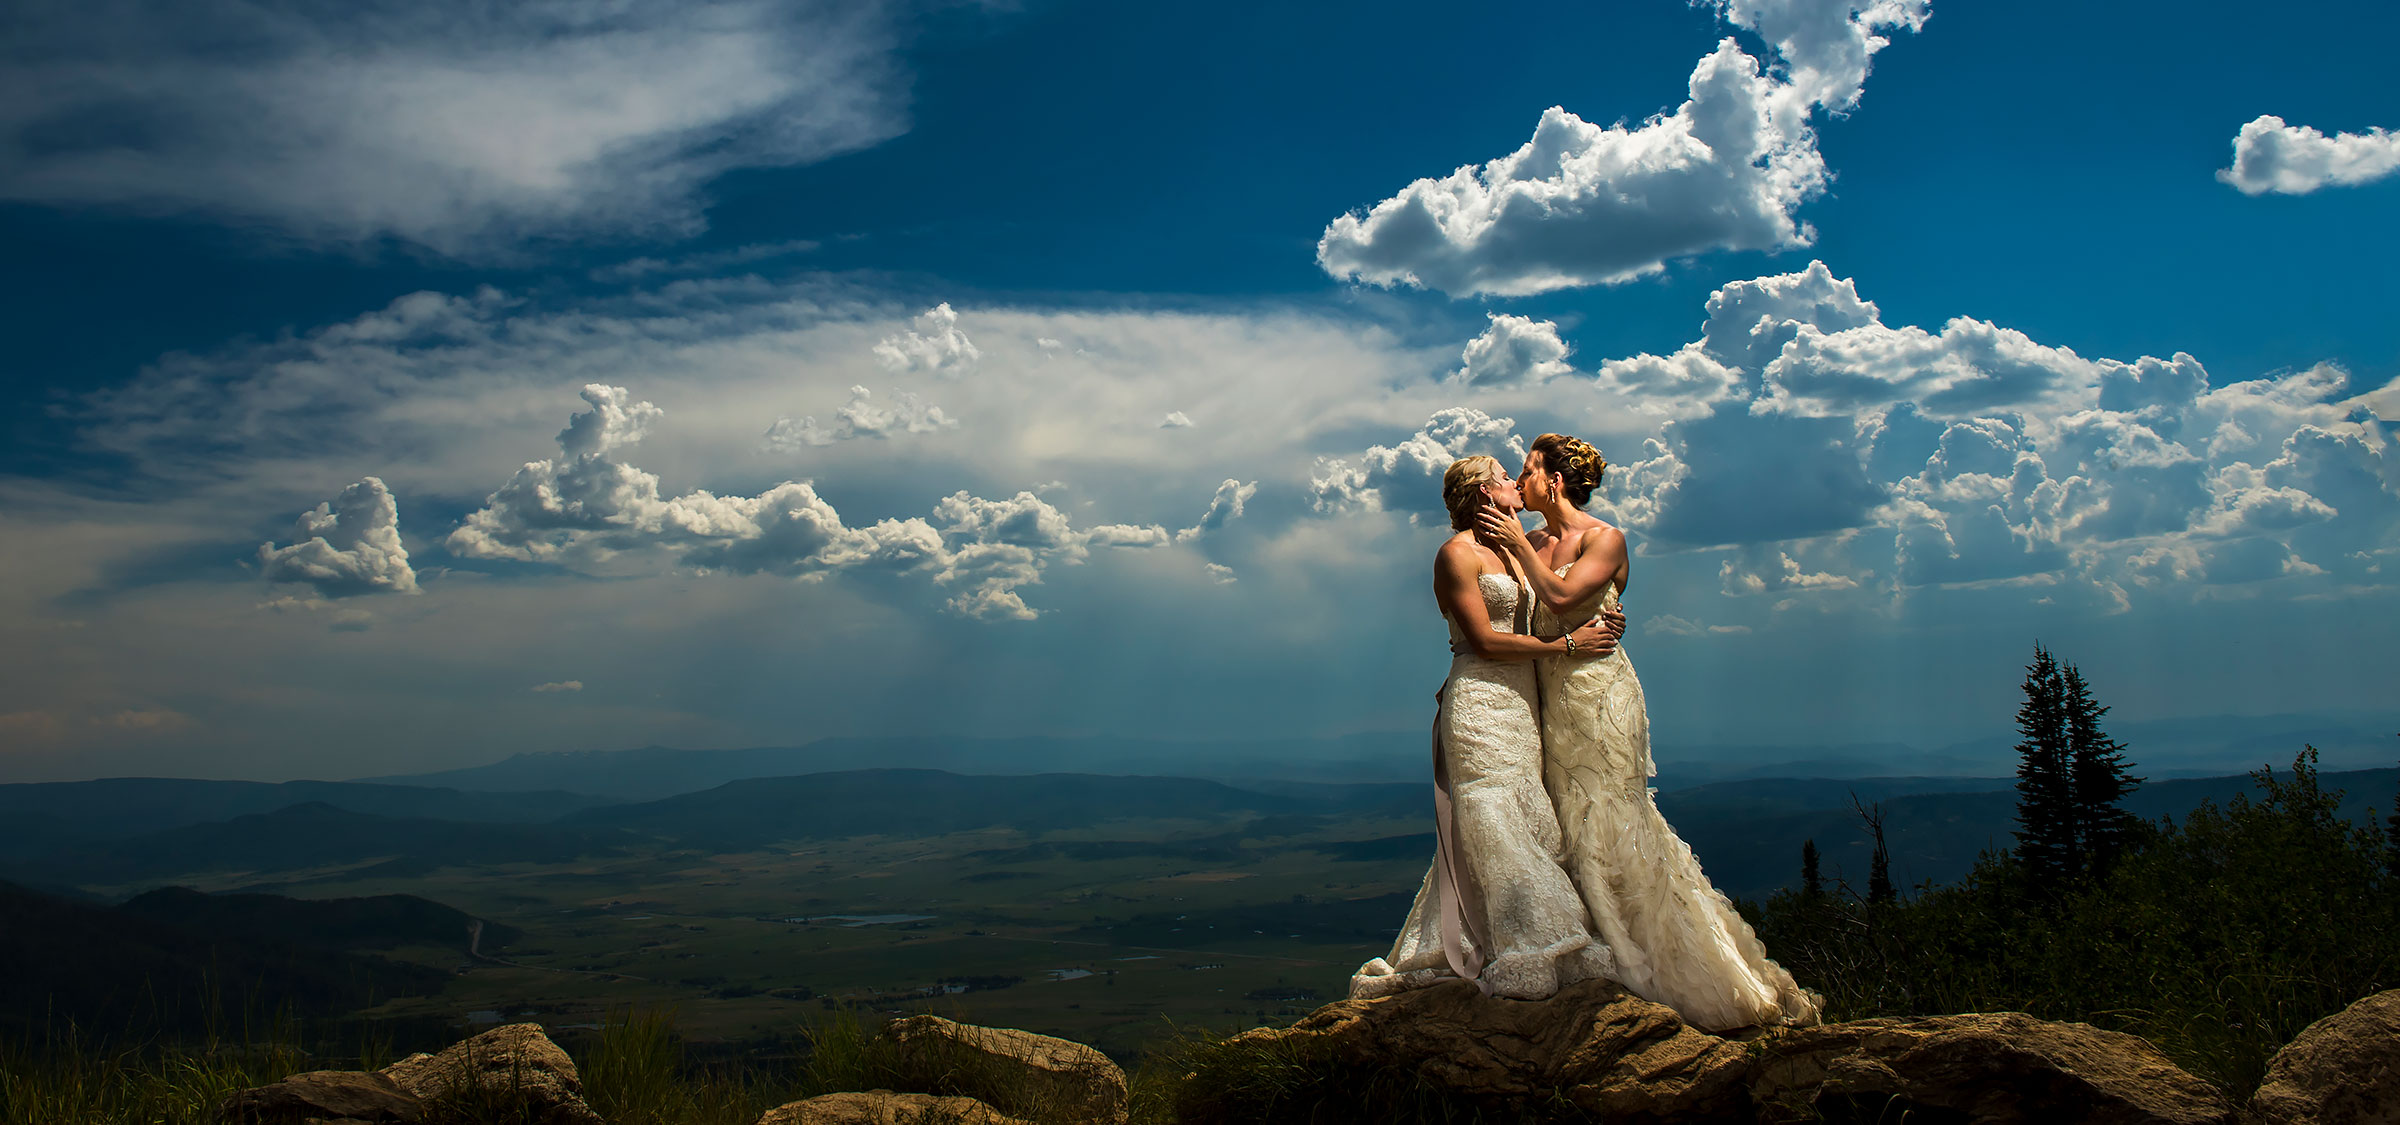 Cool Photo of Two Brides | Steamboat Springs Wedding | Colorado Wedding Photographers | J. La Plante Photo